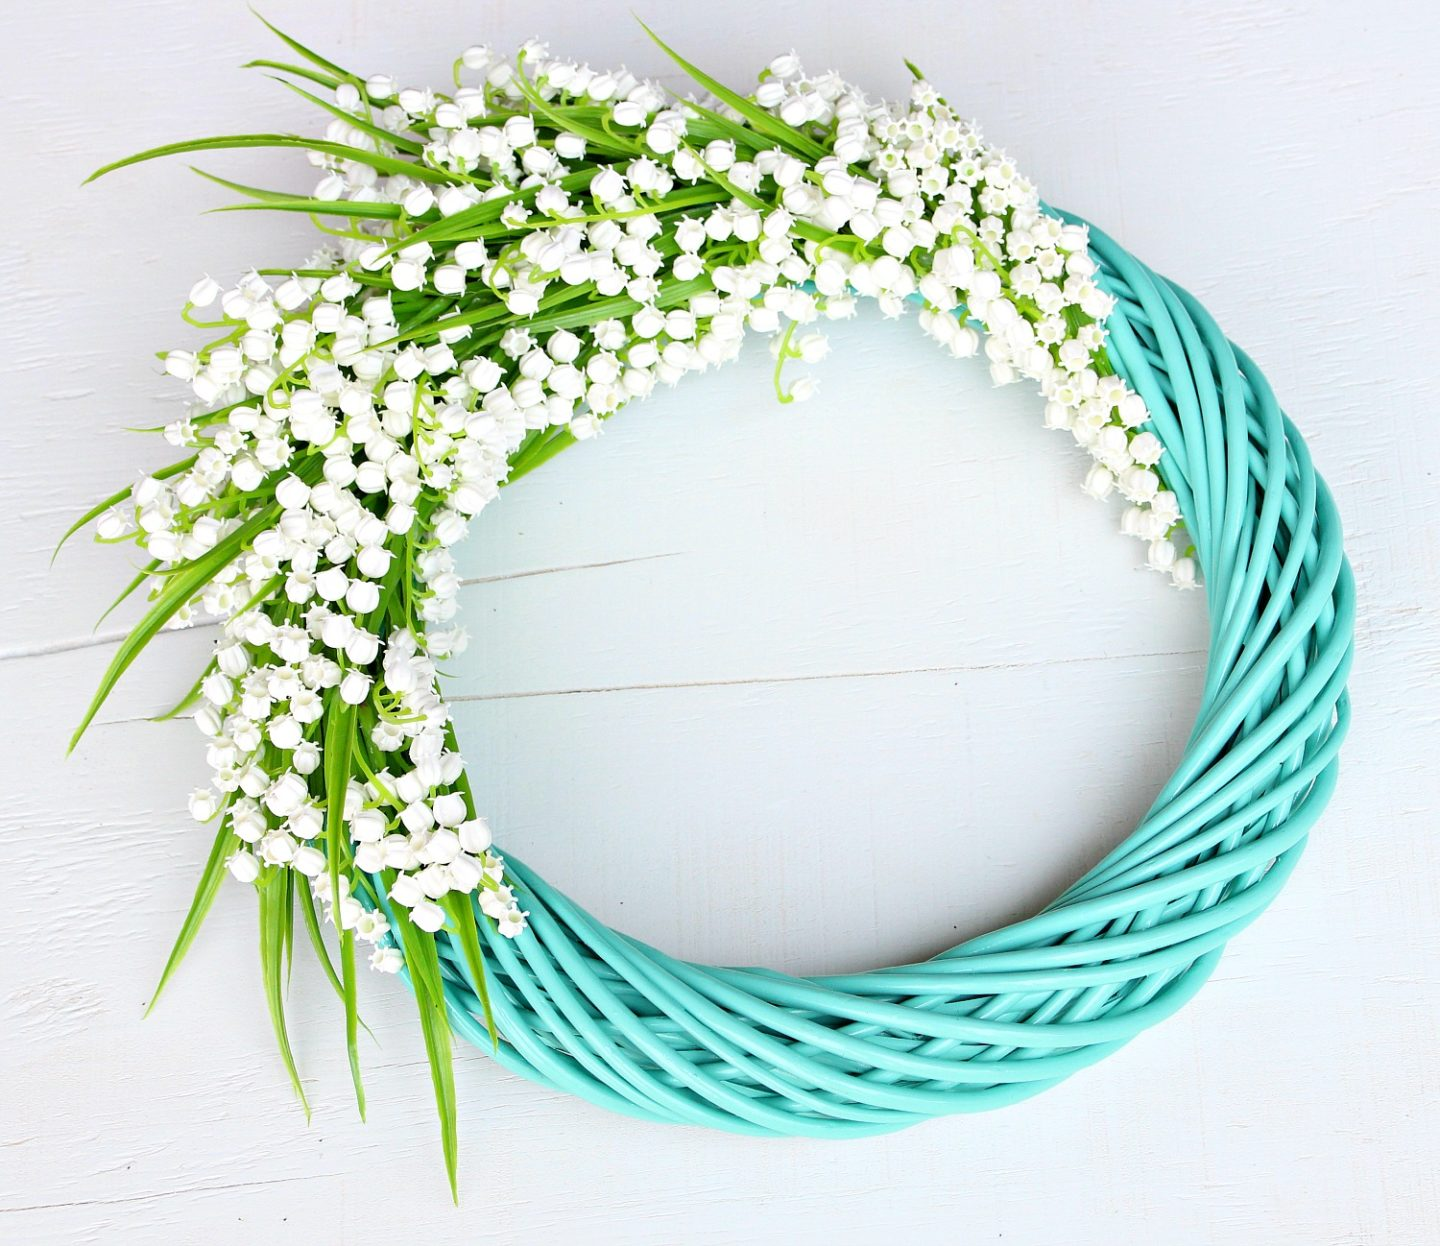 Easy DIY Faux Flower Wreath | Turquoise Lily of the Valley Wreath